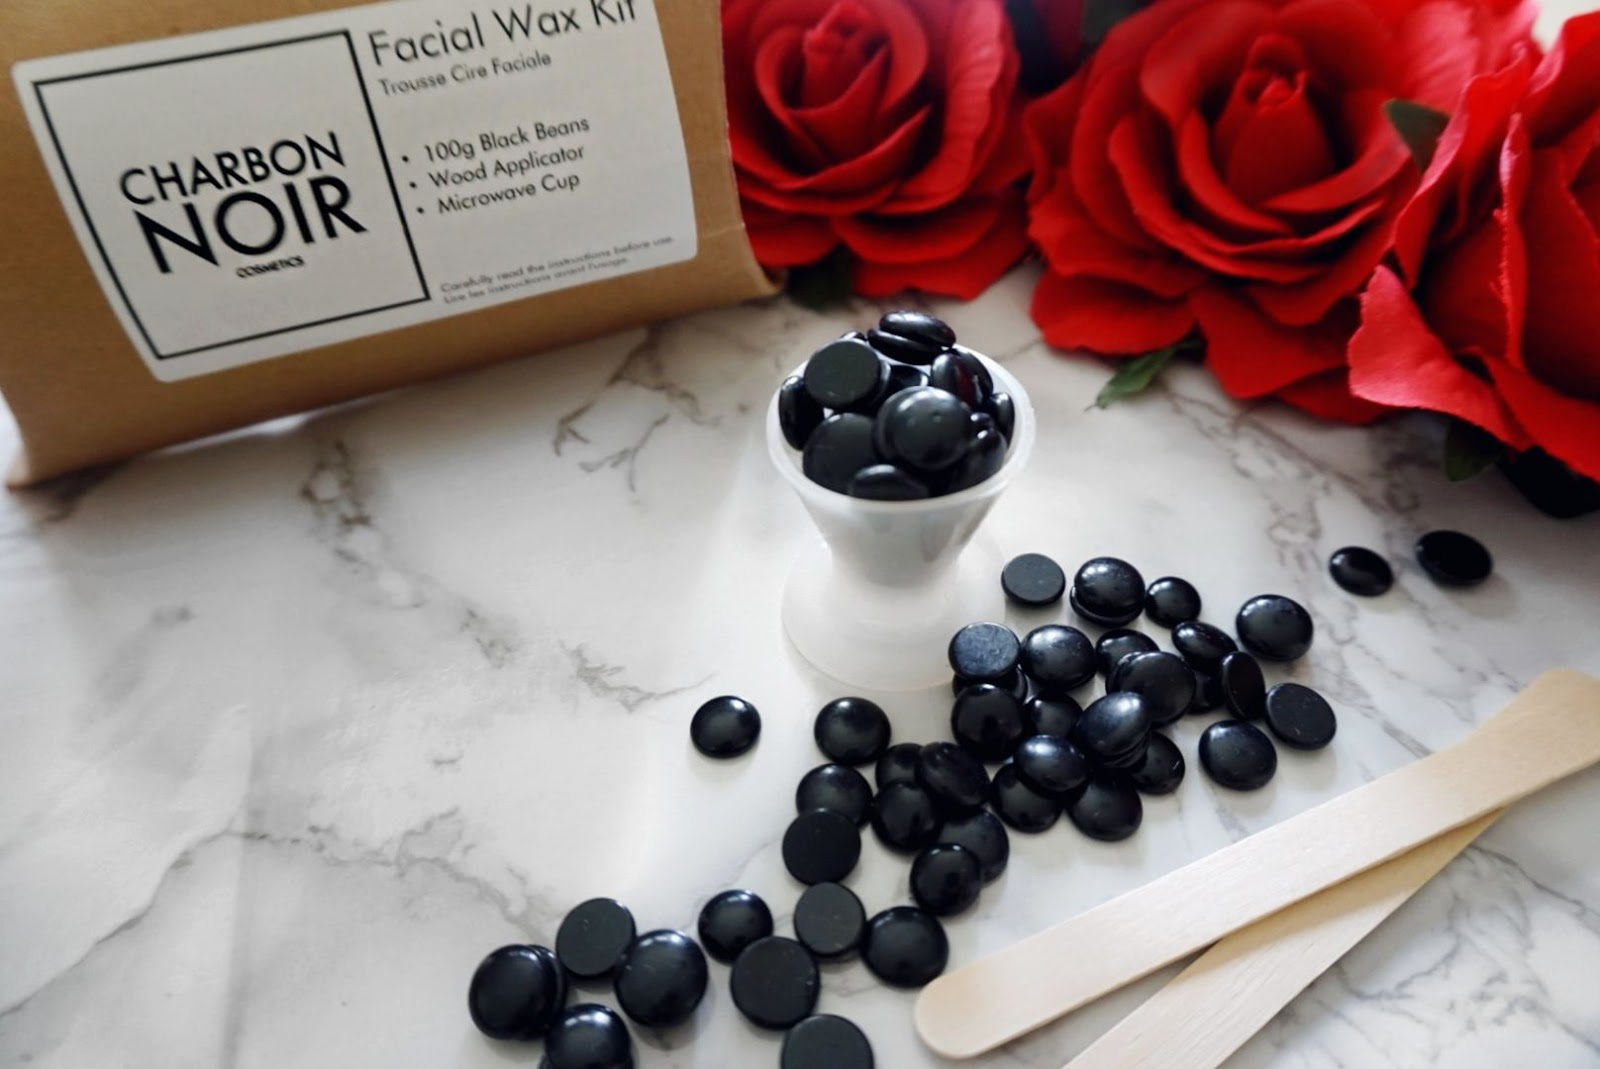 UNWANTED HAIRS BE GONE WITH THE FACIAL CHARBON ACTIVATED WAX KIT CHARBON NOIR COSMETICS